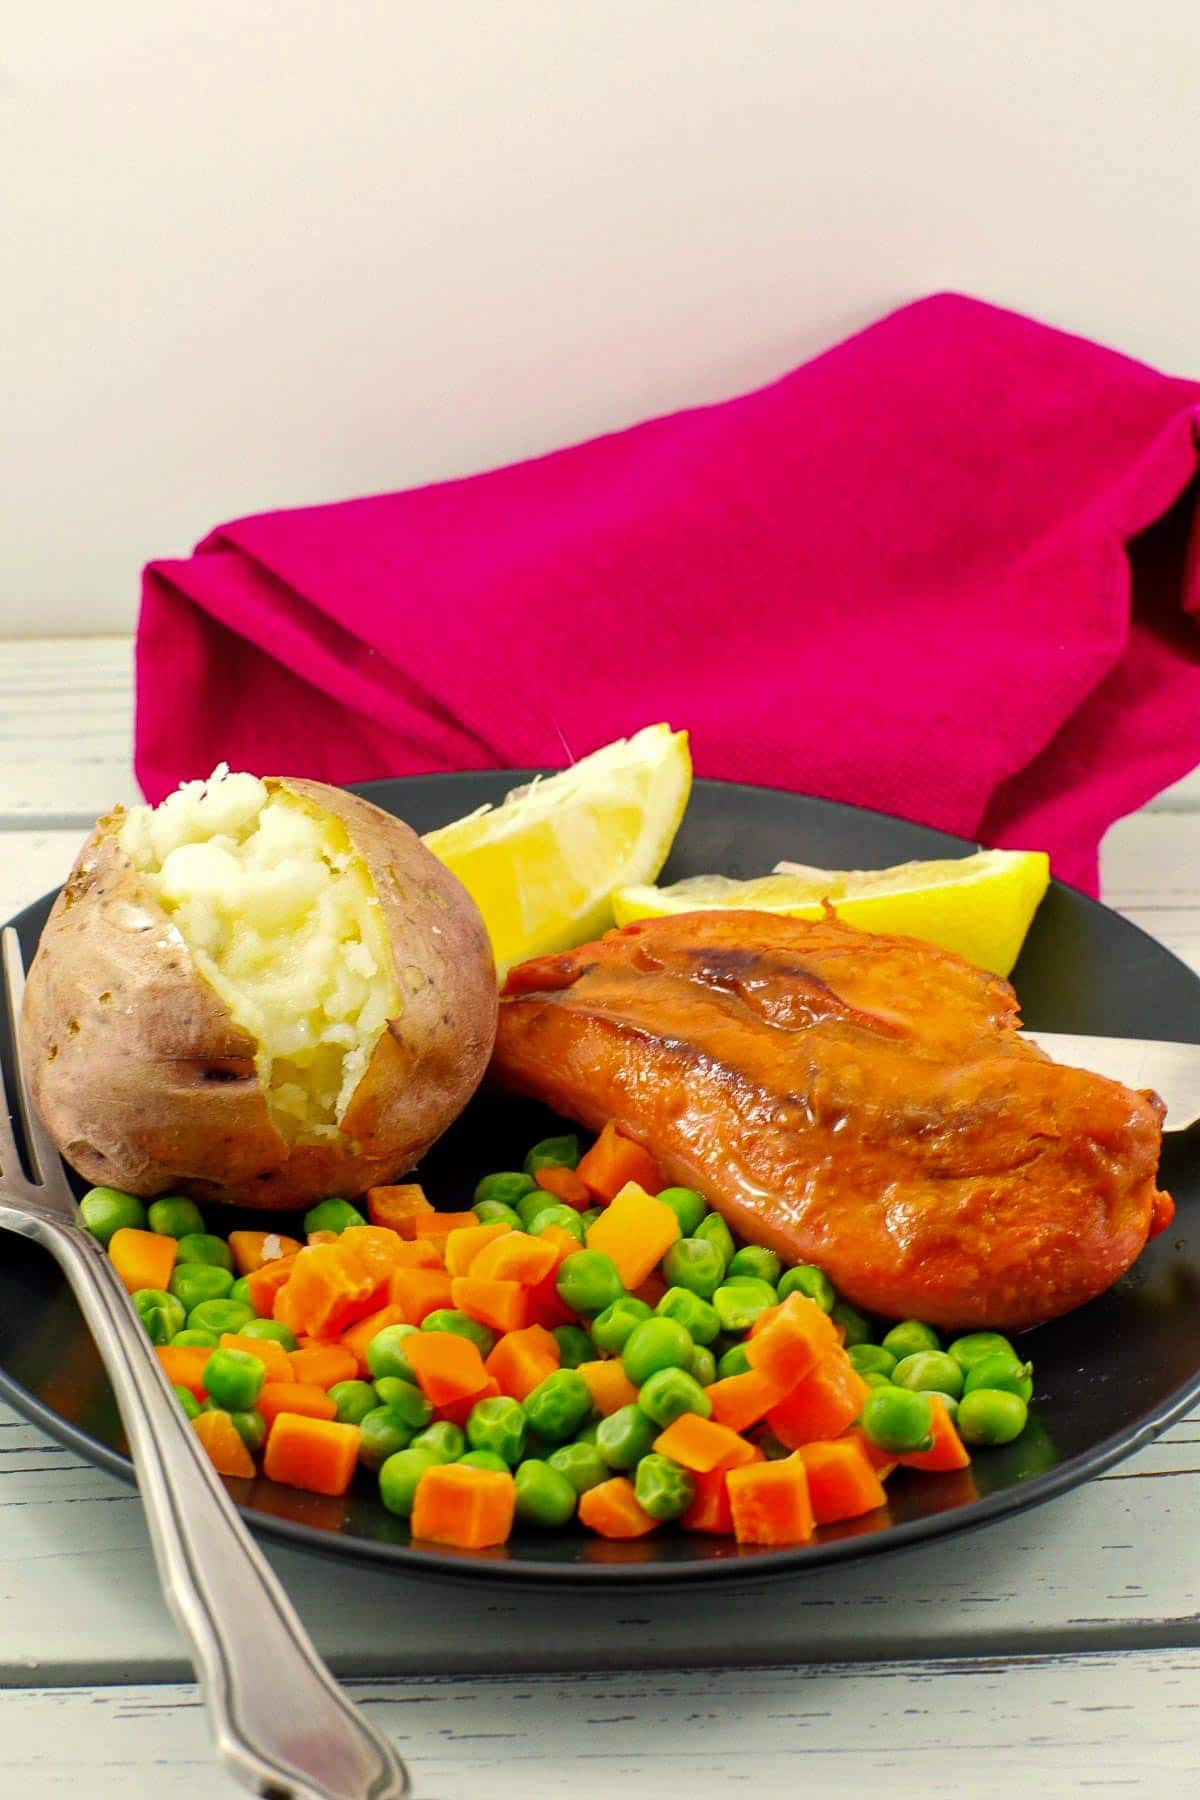 Bonanza Monterey chicken on plate with baked potato and mixed vegetables